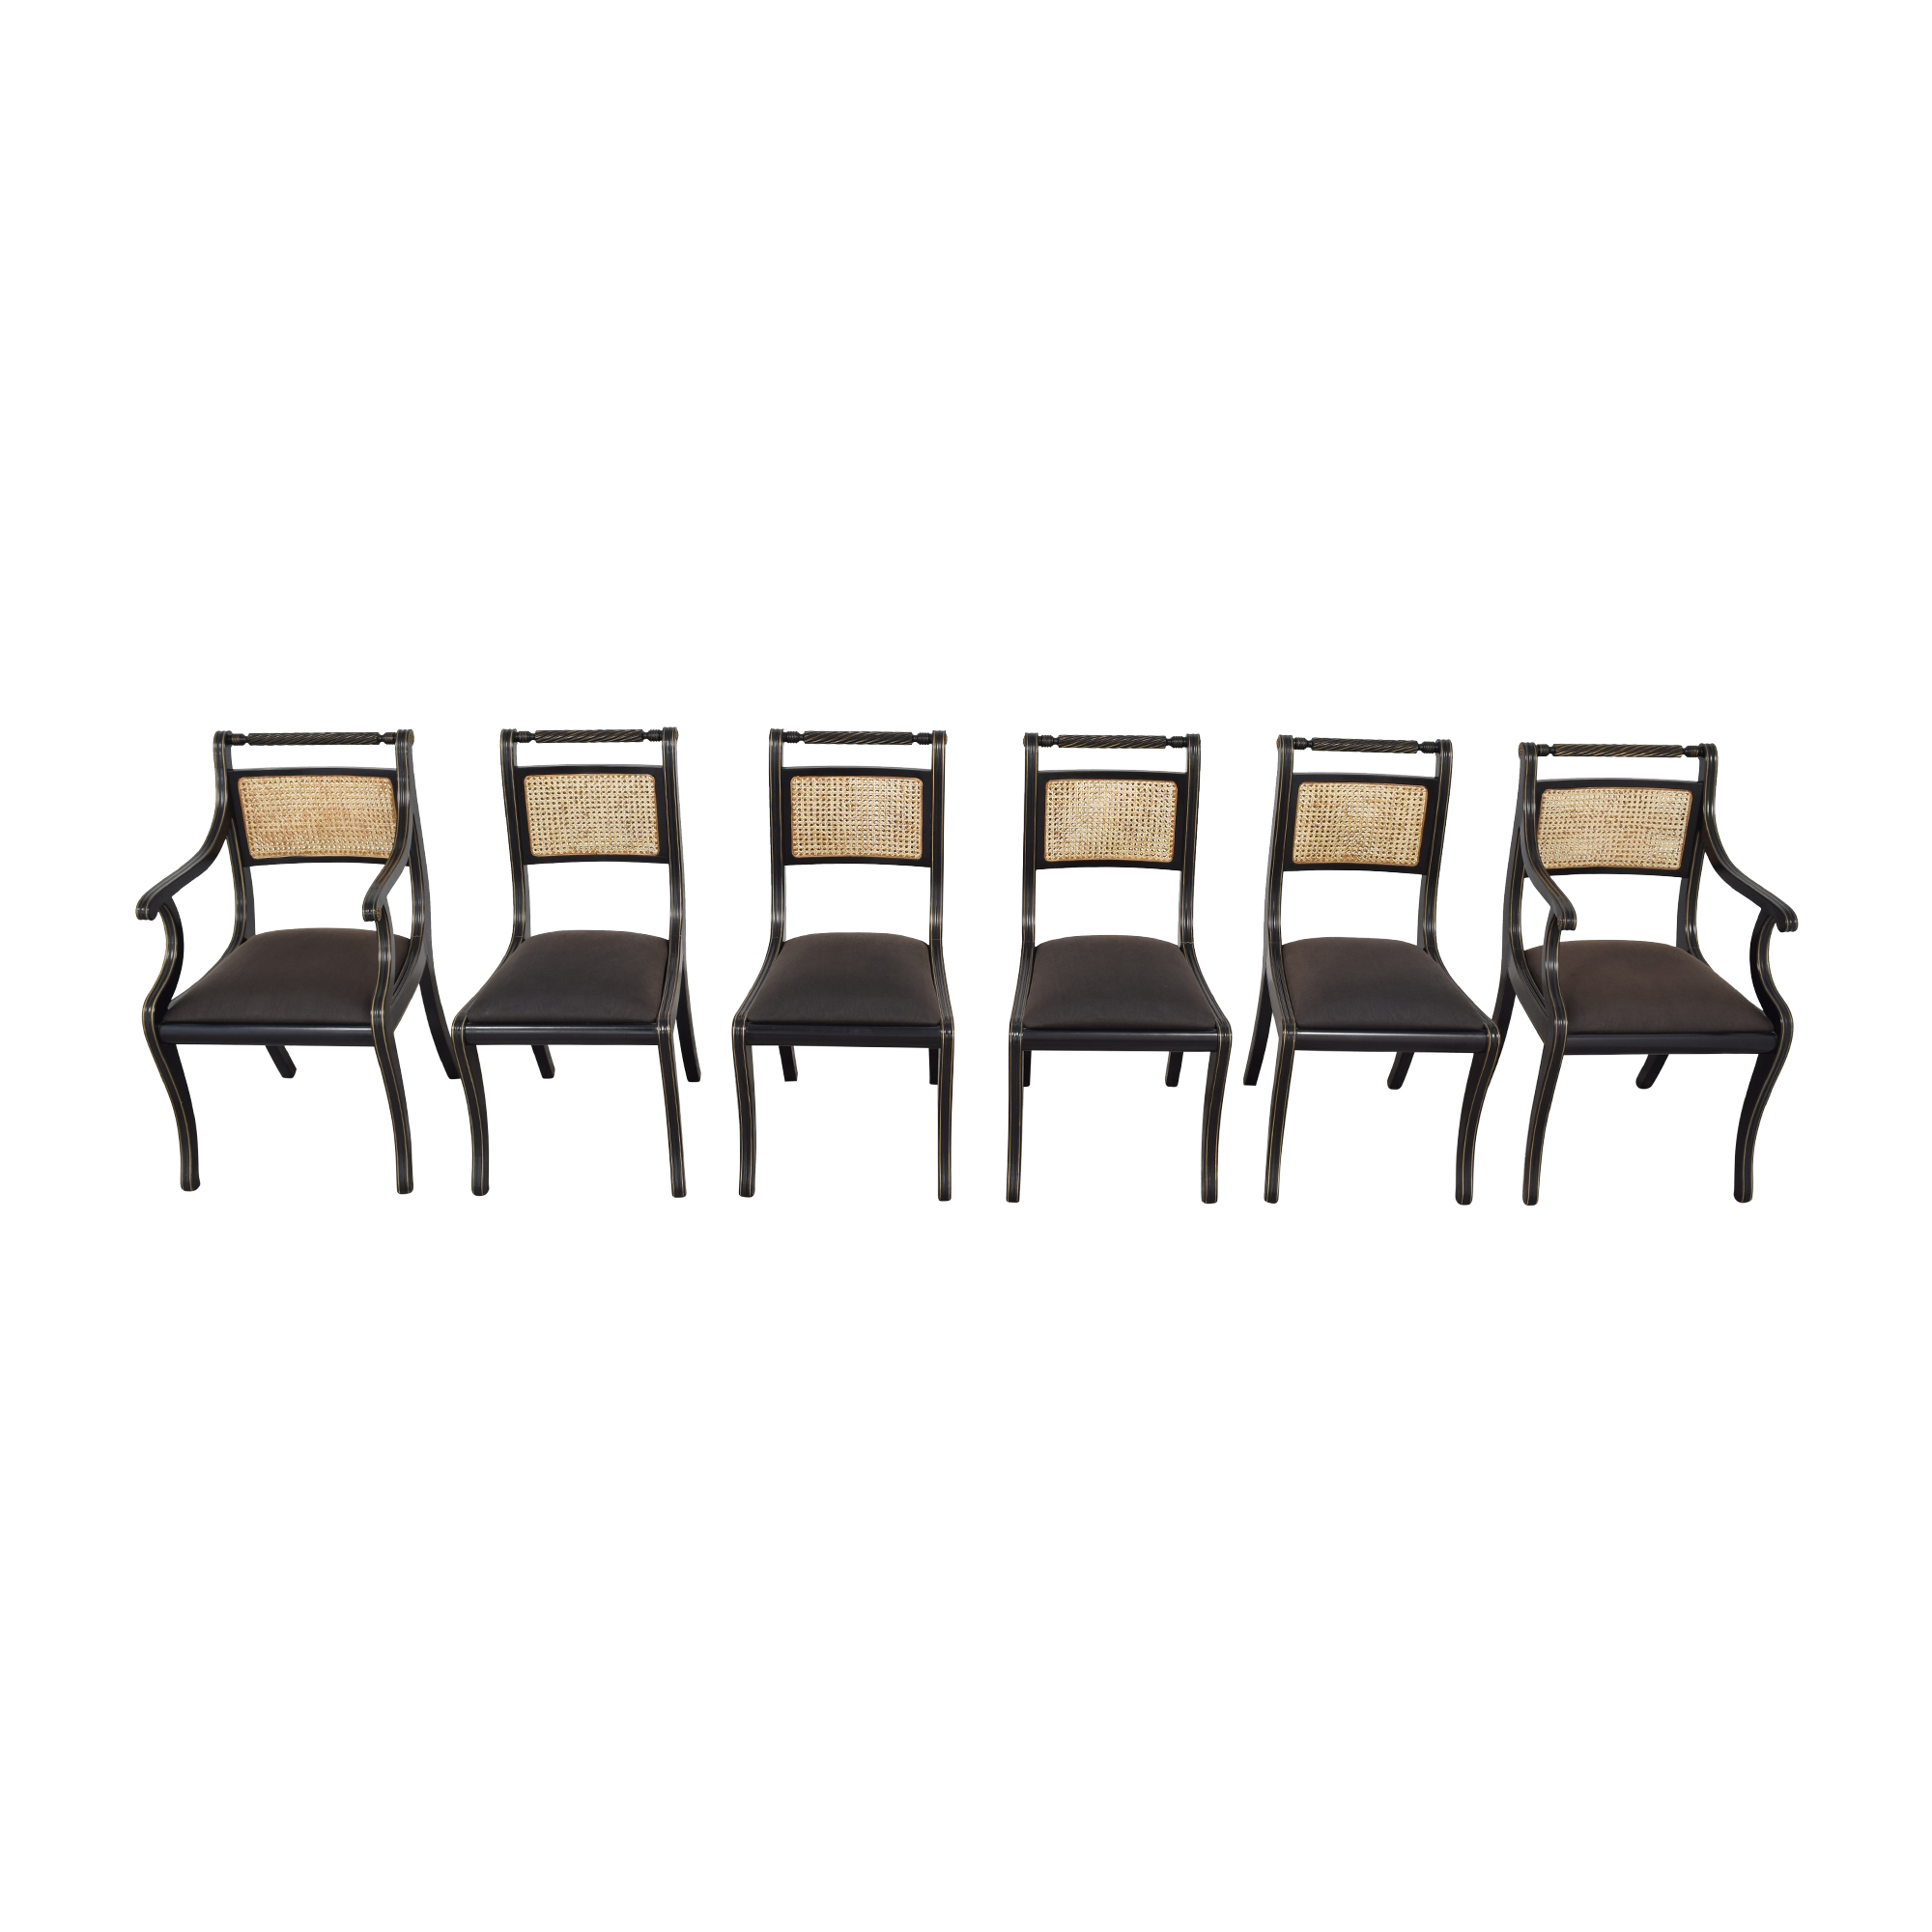 buy Bloomingdale's Italian Cane Back Dining Chairs Bloomingdale's Dining Chairs